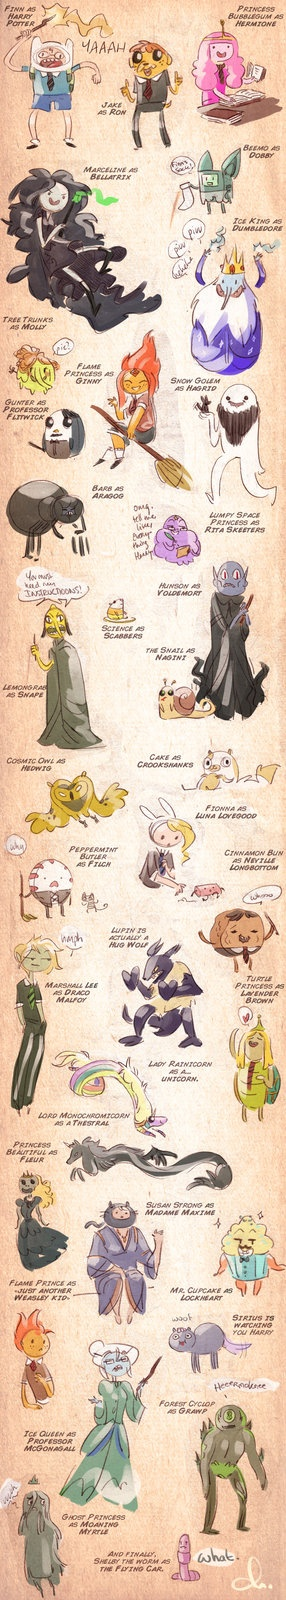 If the people of Adventure Time were in Harry Potter, I find these strangely correct.